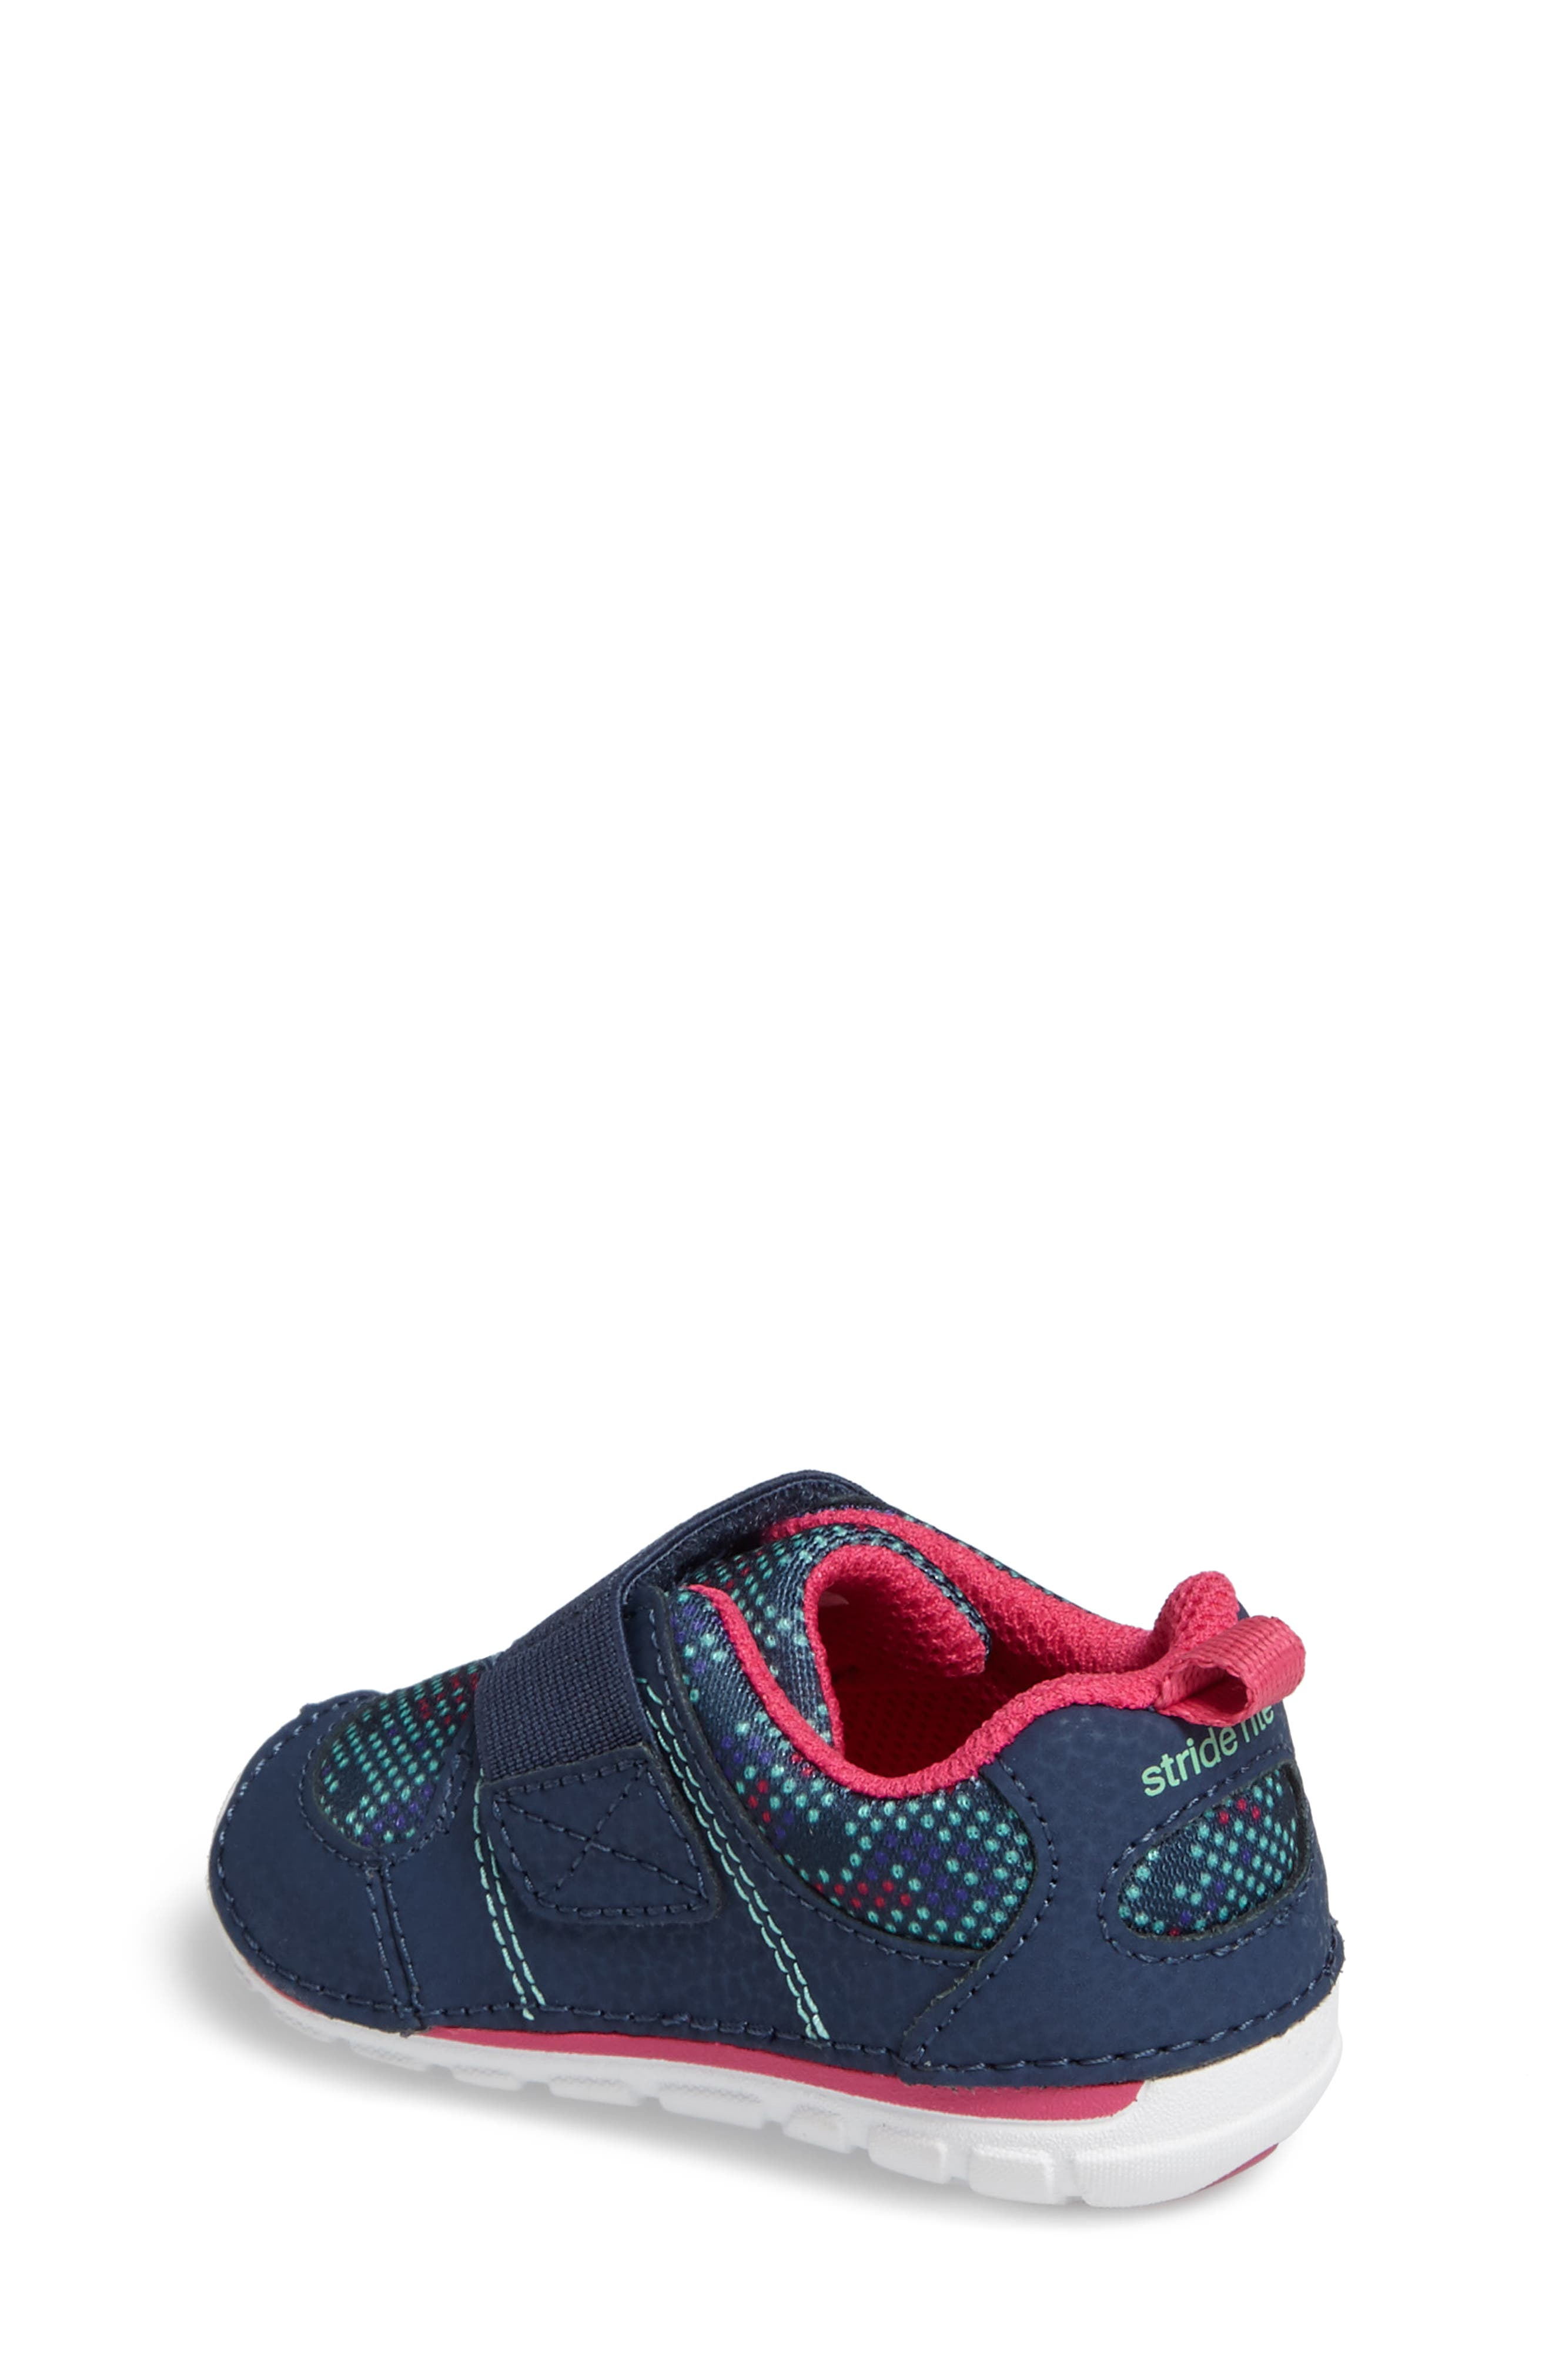 Soft Motion<sup>™</sup> Ripley Sneaker,                             Alternate thumbnail 2, color,                             Navy